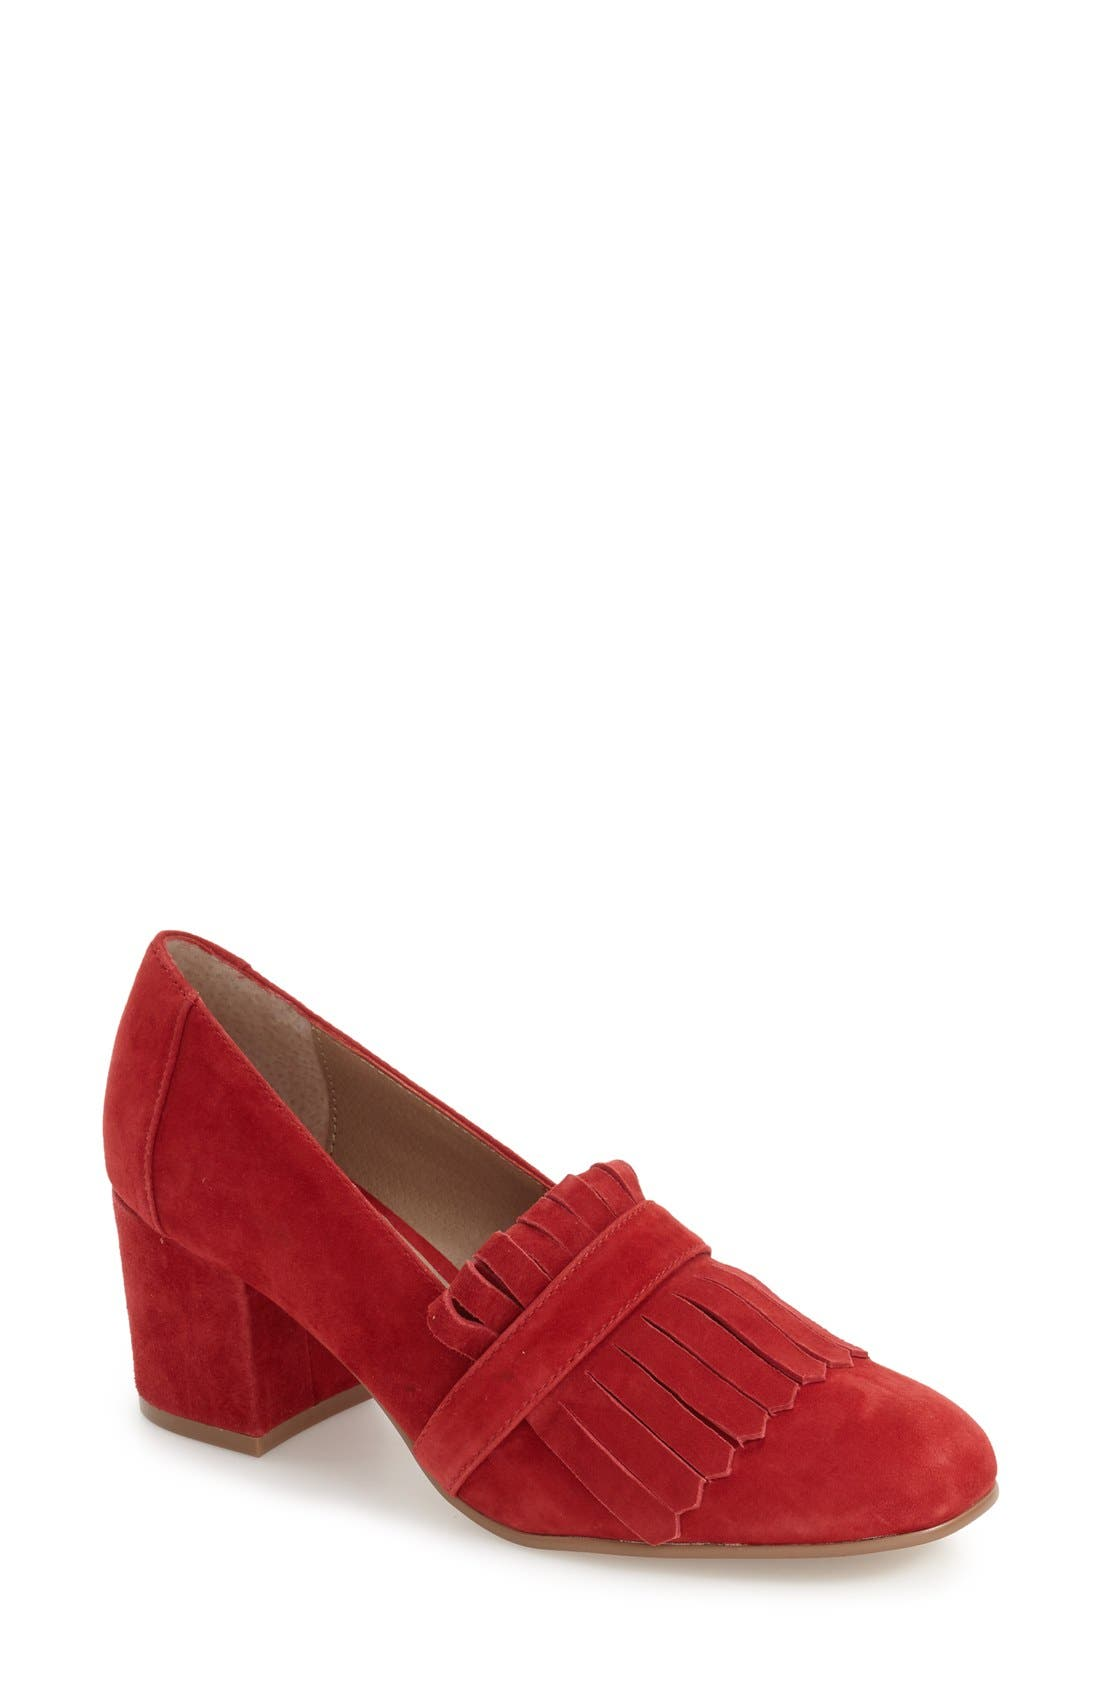 'Kate' Loafer Pumps,                         Main,                         color, Red Suede